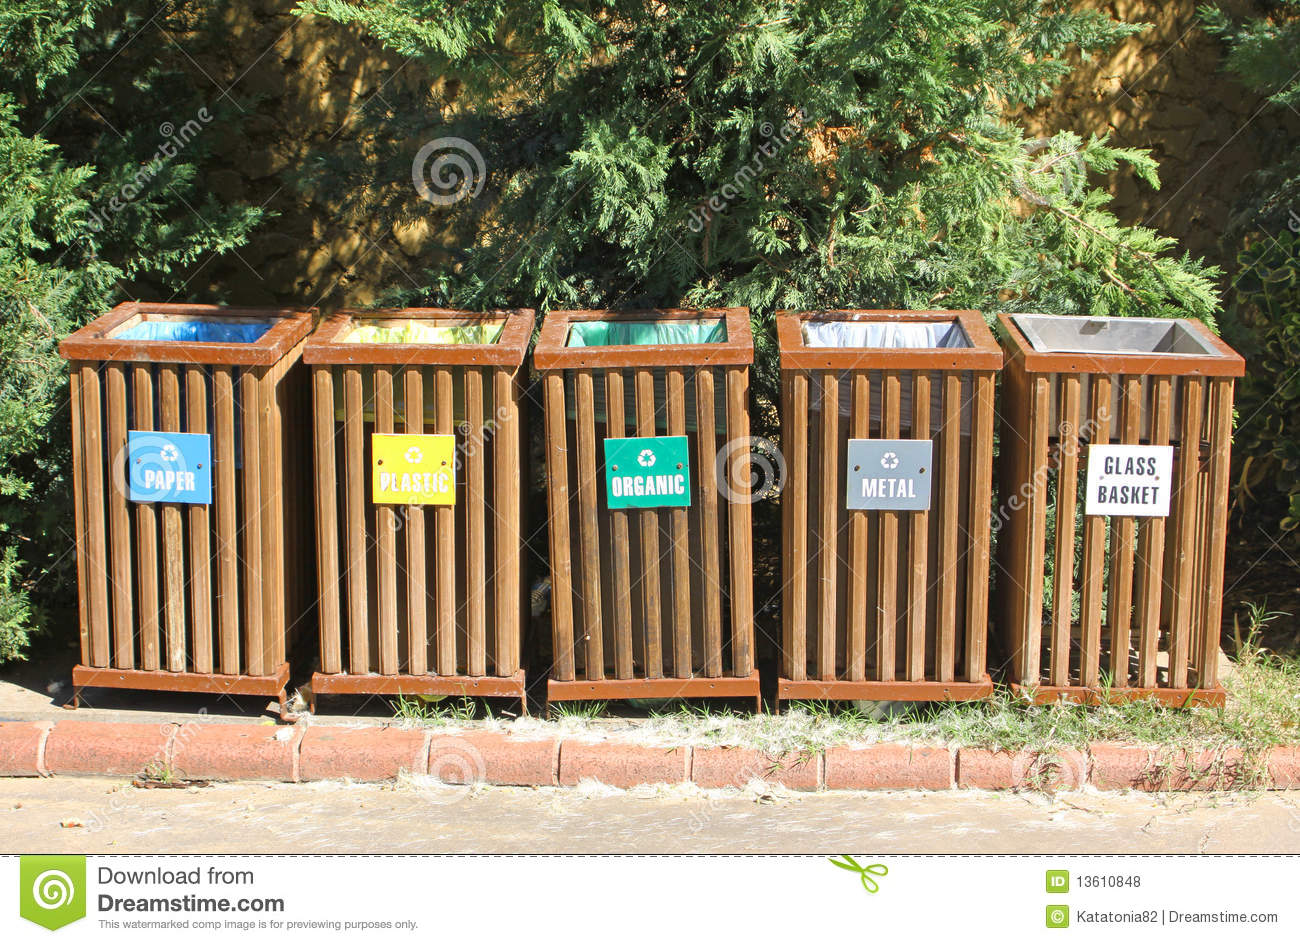 Recycle Bins For Waste Segregation Royalty Free Stock